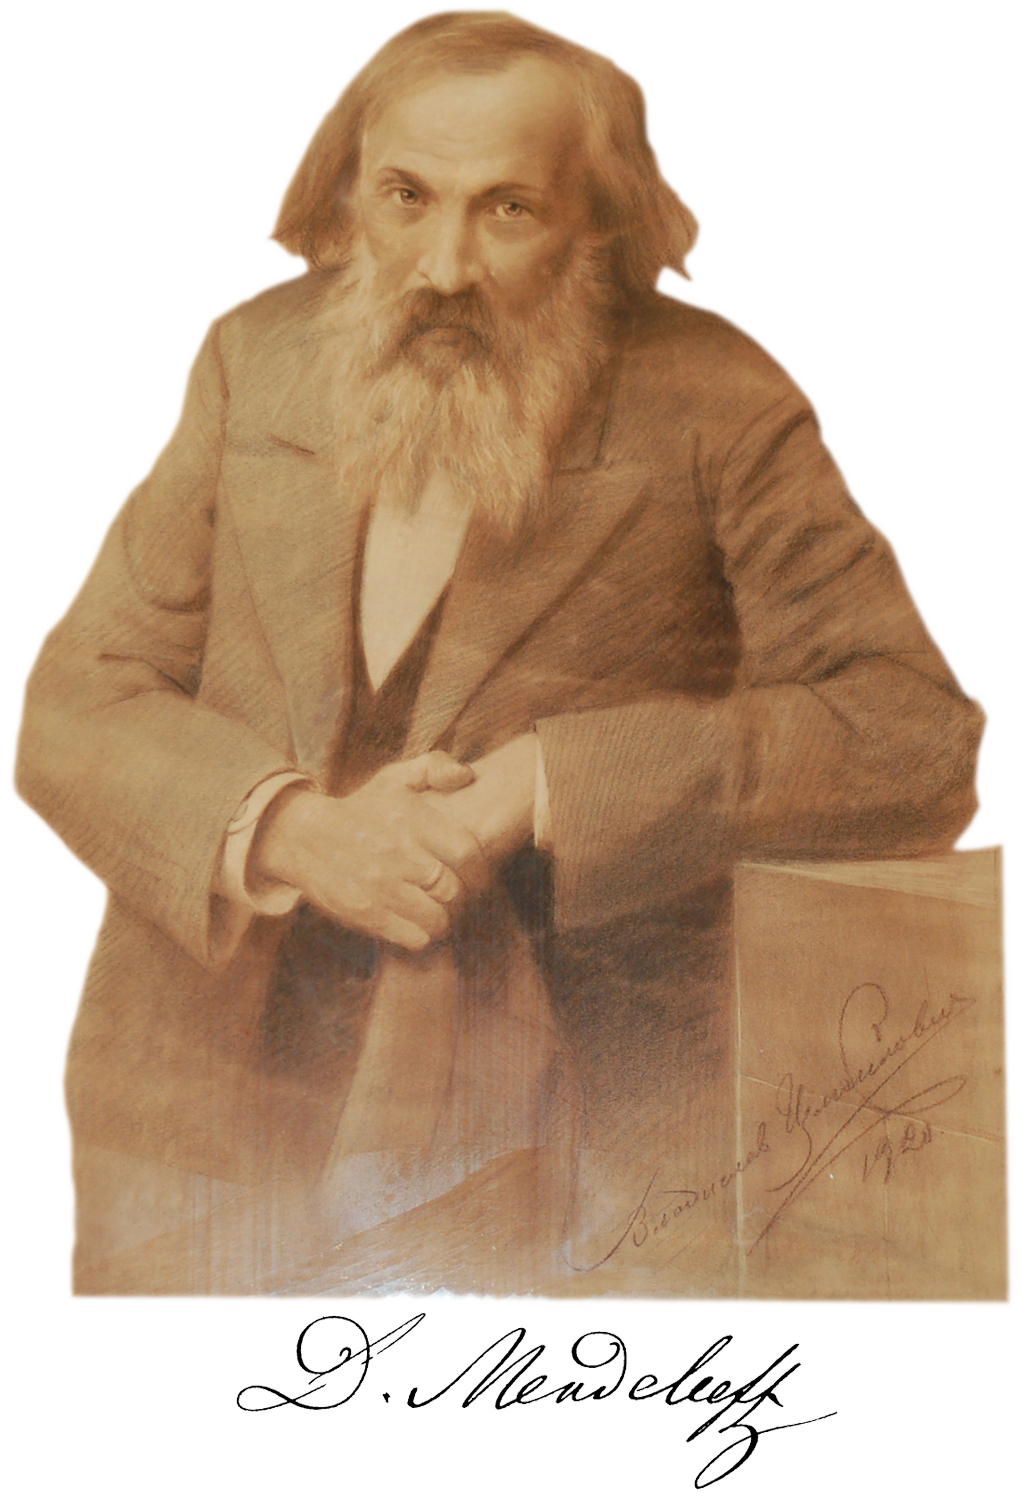 the contributions of dmitri mendeleev henry moseley and glenn t seaborg on the development of the pe Dmitri mendeleev henry moseley: ilar purposes notable contributions to wavelet theory can be attributed to.